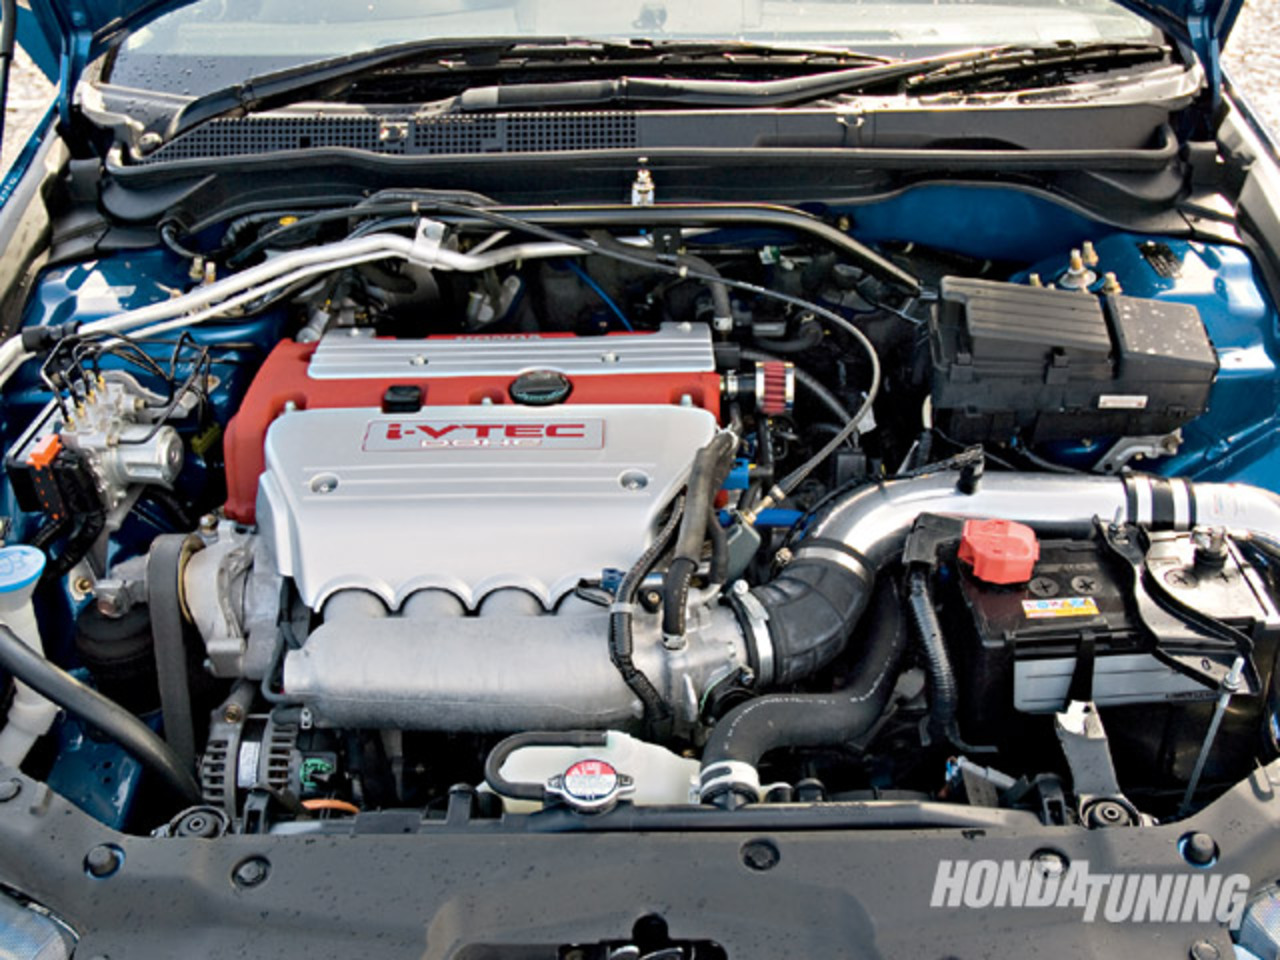 The engines arent inverted. Honda's k-series engines have the intake